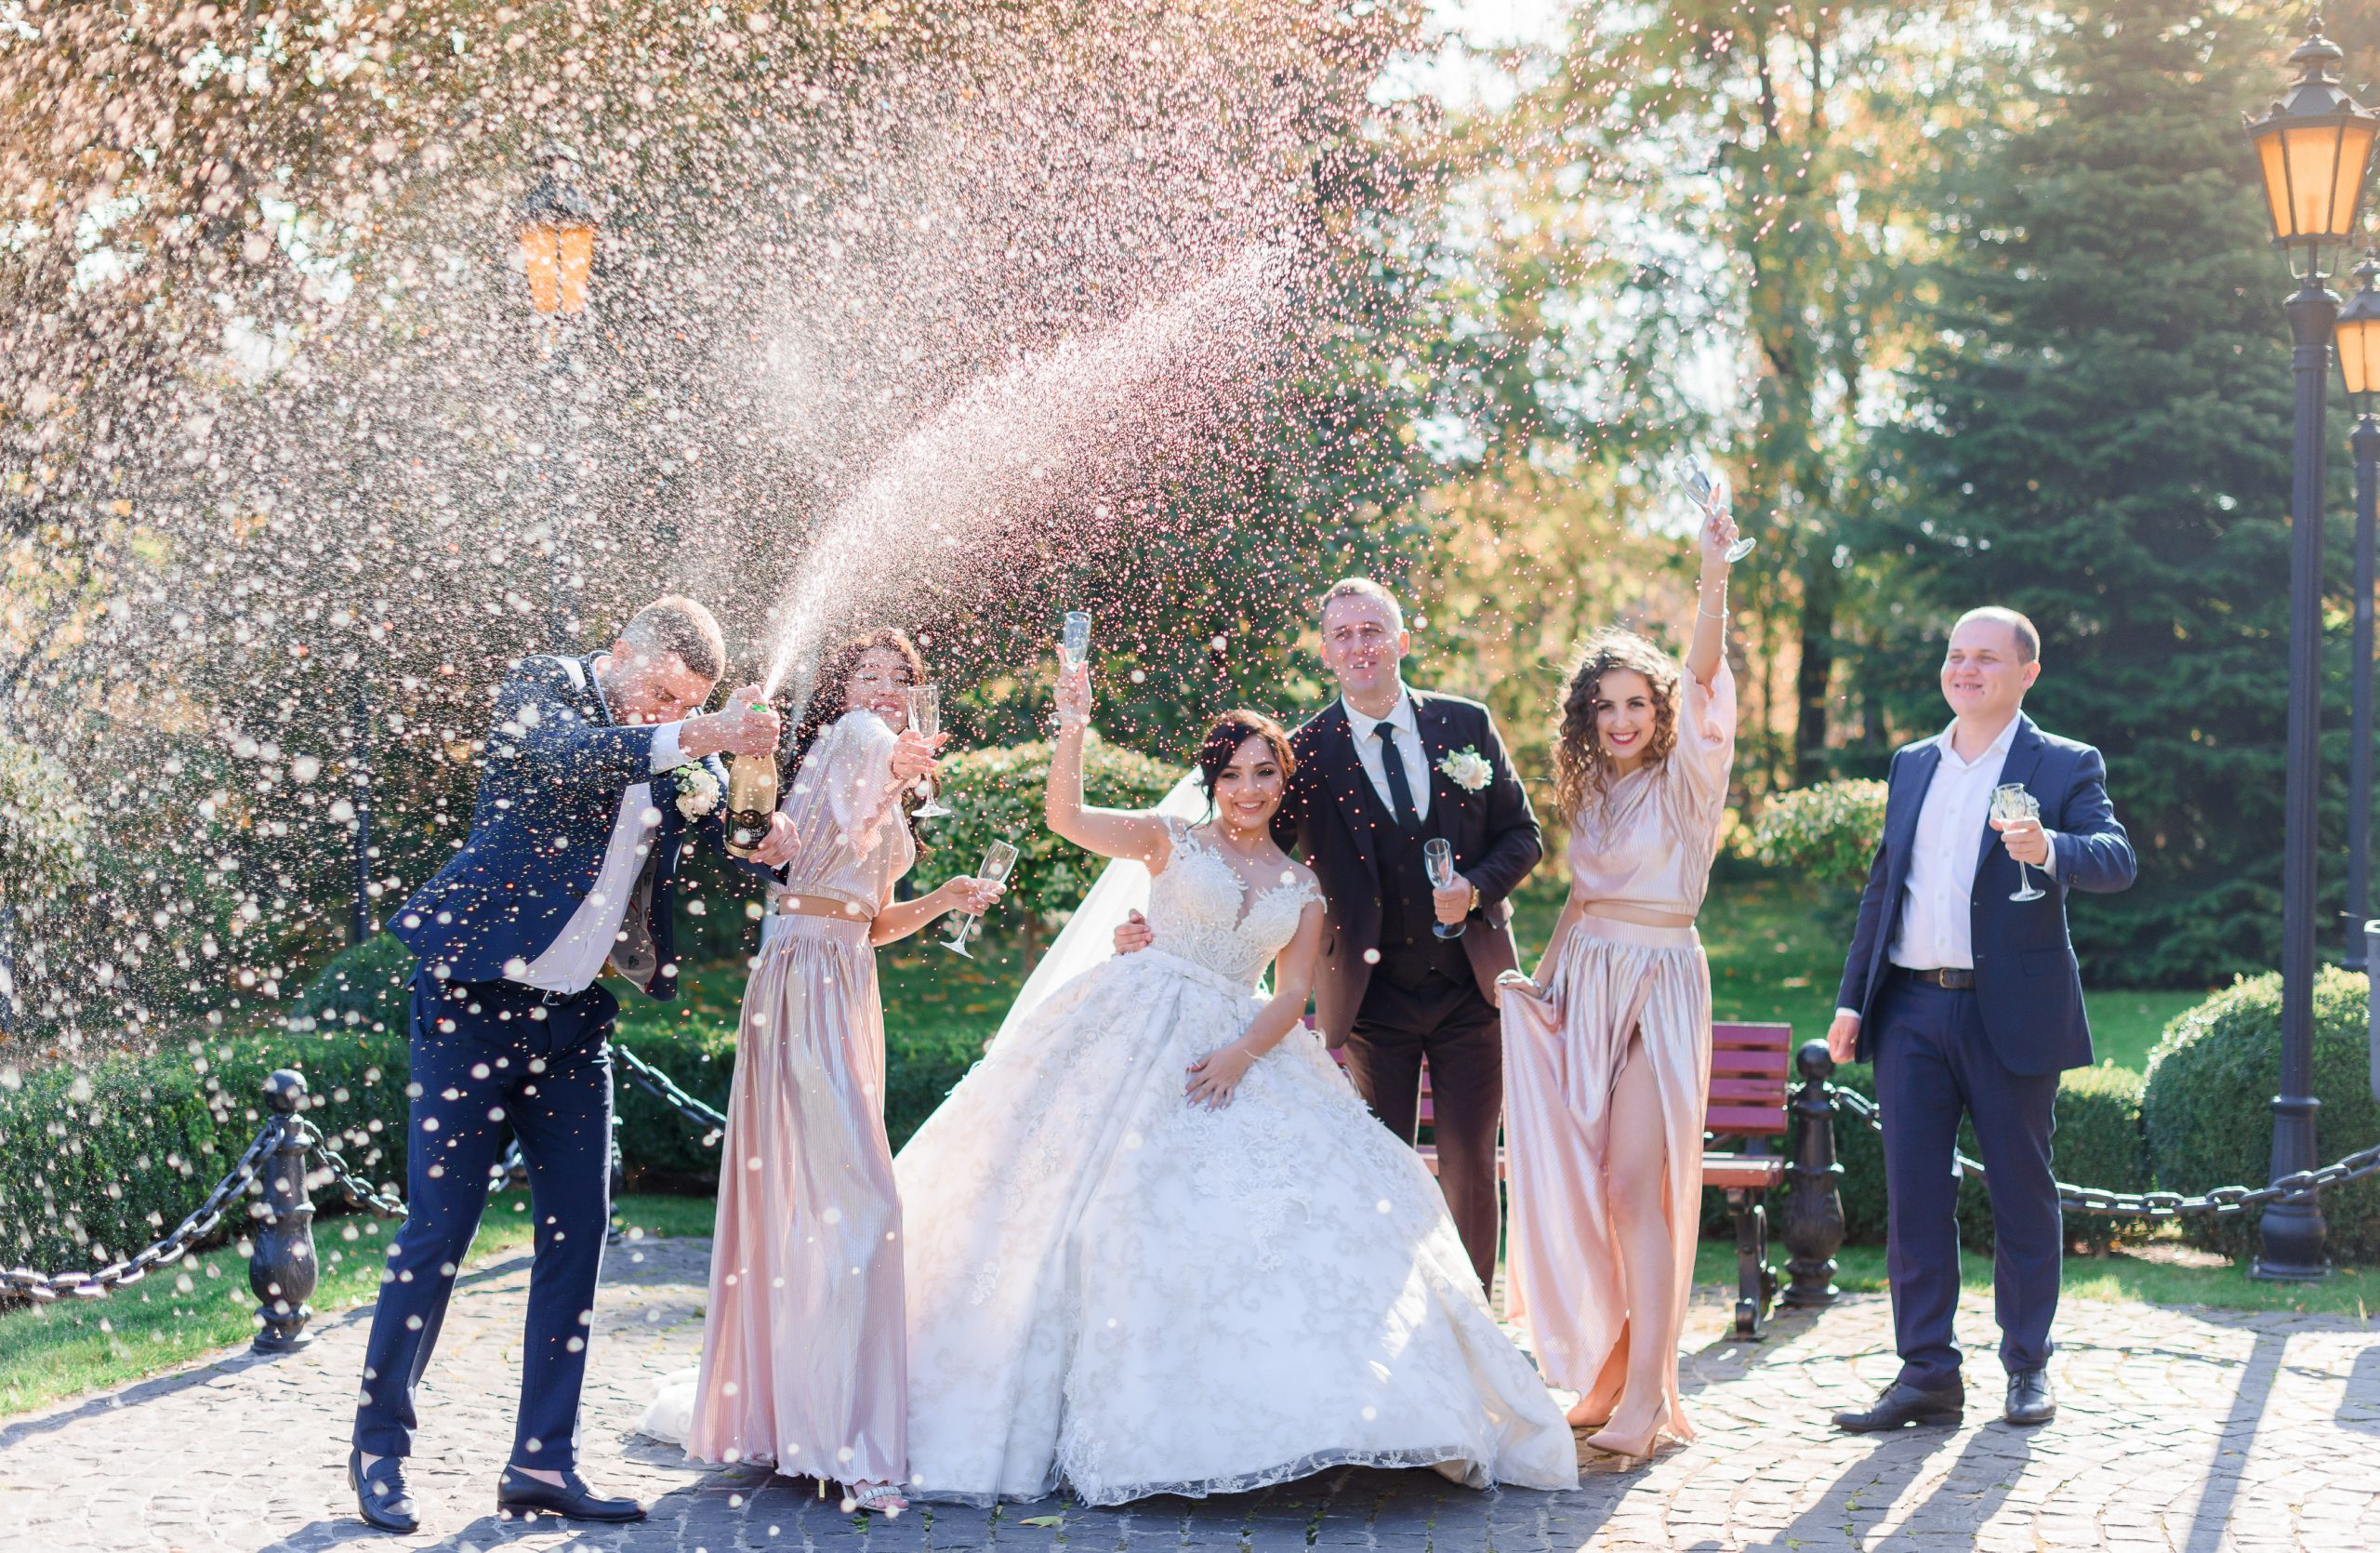 Hire a Professional Wedding DJ for your Wedding